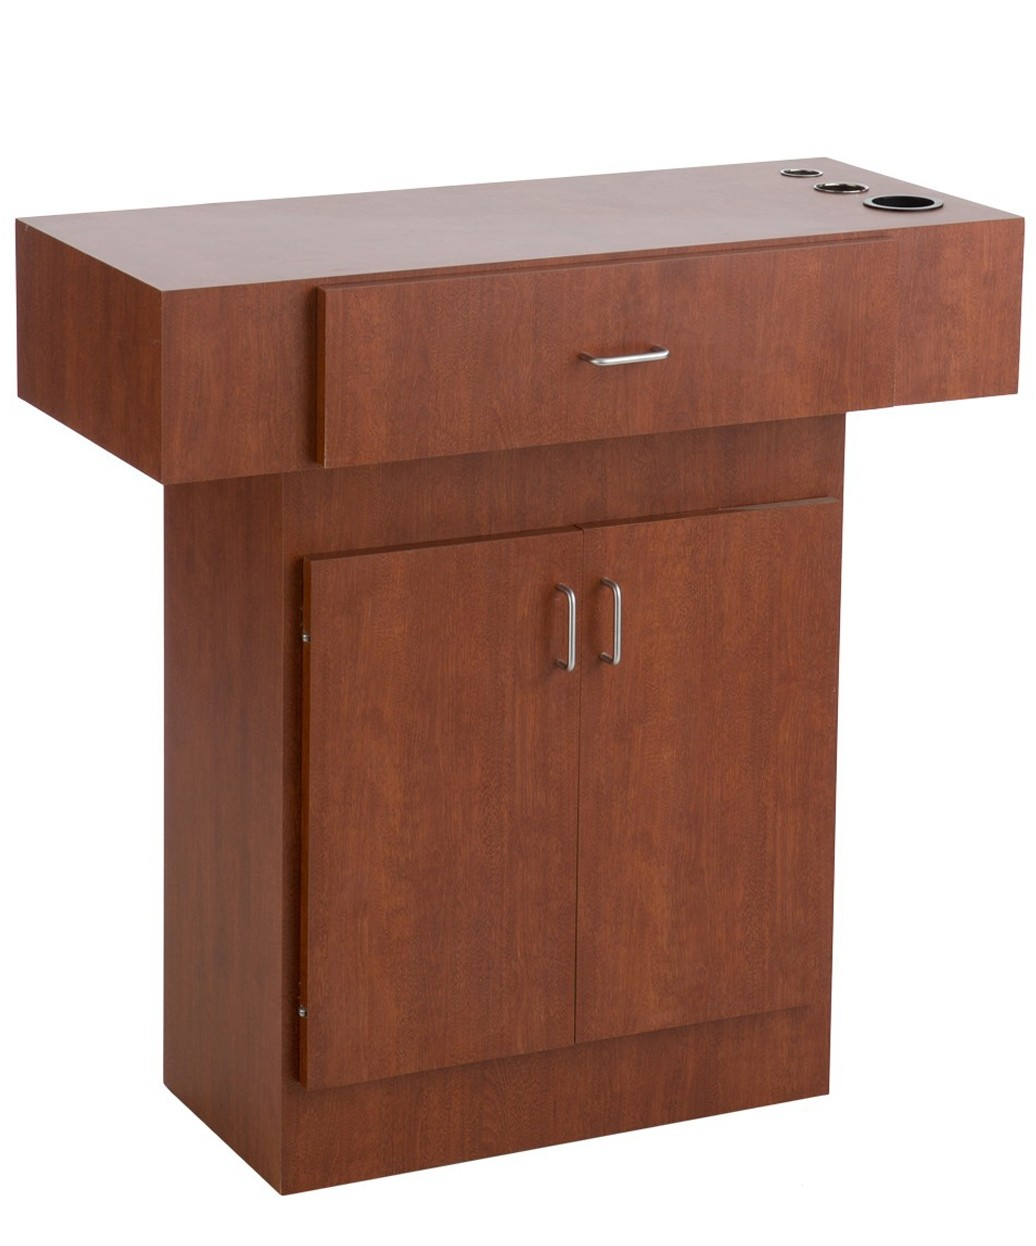 4 Operator Pibbs 3706 Pisa Package Econo Styling Station With Storage